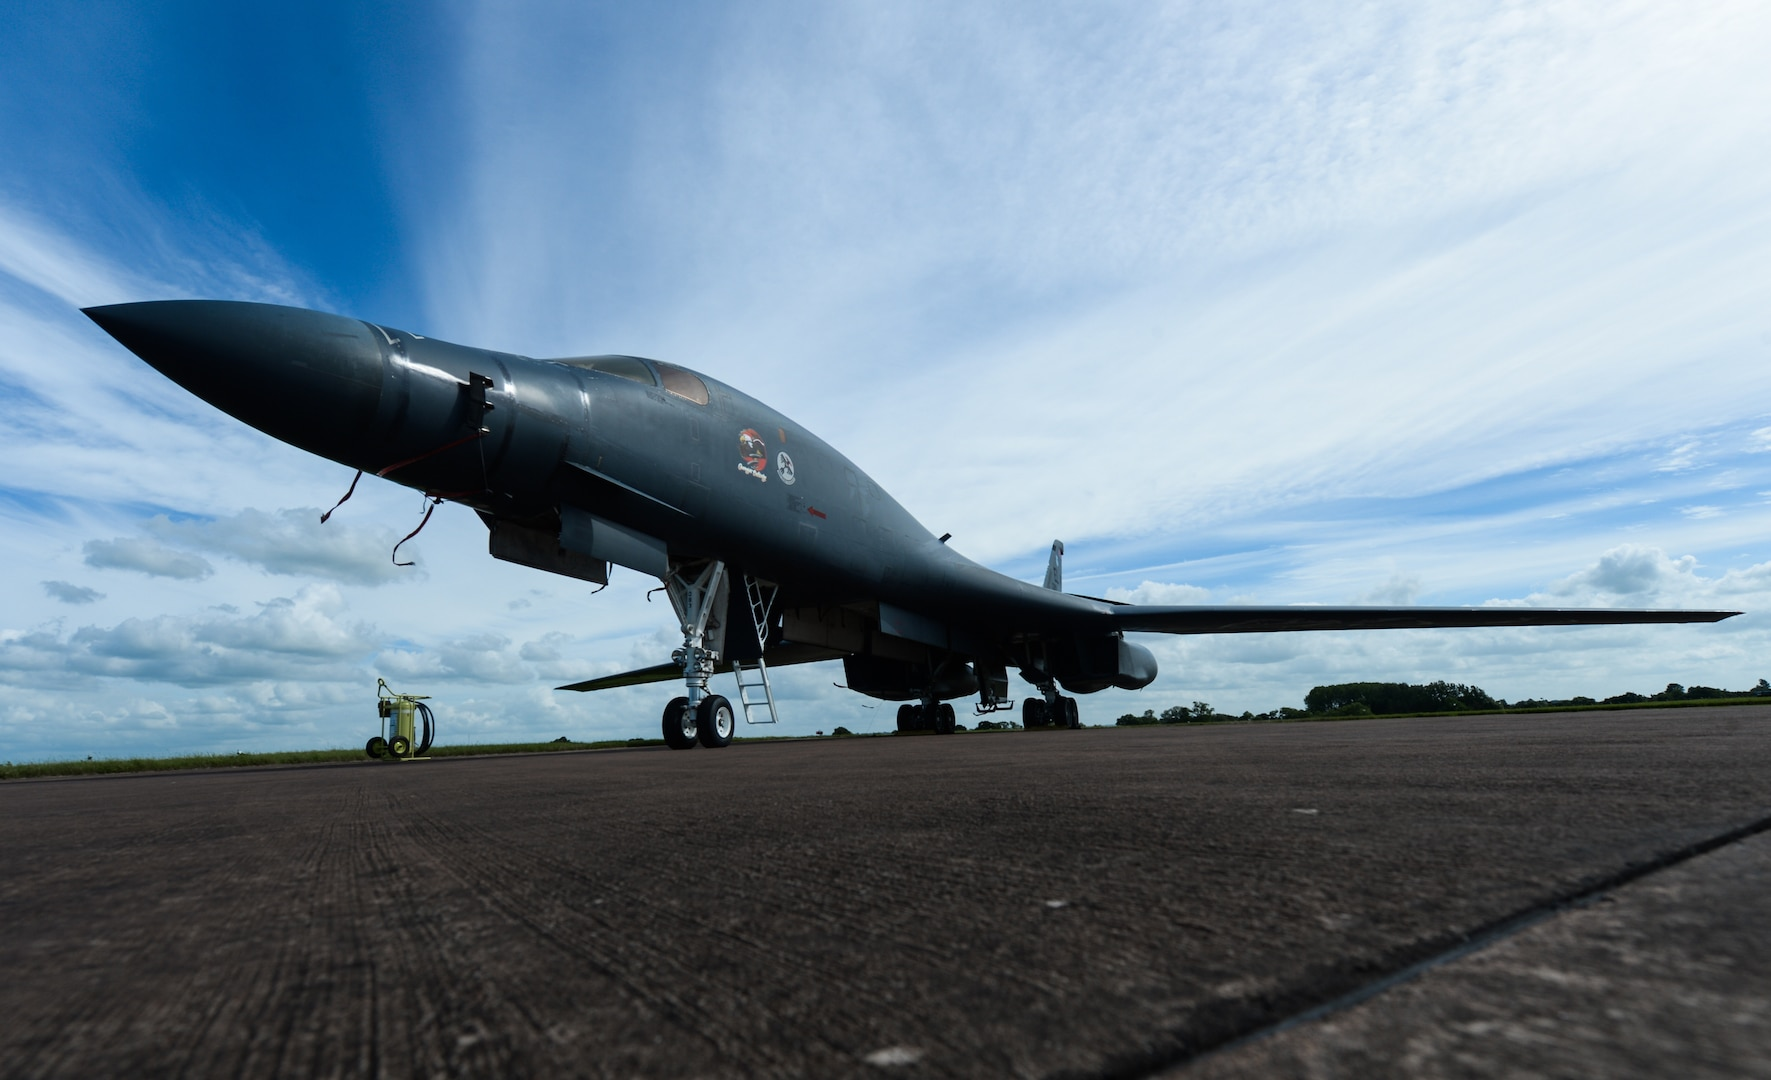 Multimission, supersonic bomber B-1B Lancer parked on flightline at Royal Air Force Fairford, United Kingdom, June 9, 2017, supports exercises Baltops 17 and Saber Strike 17 (U.S. Air Force/Curt Beach)